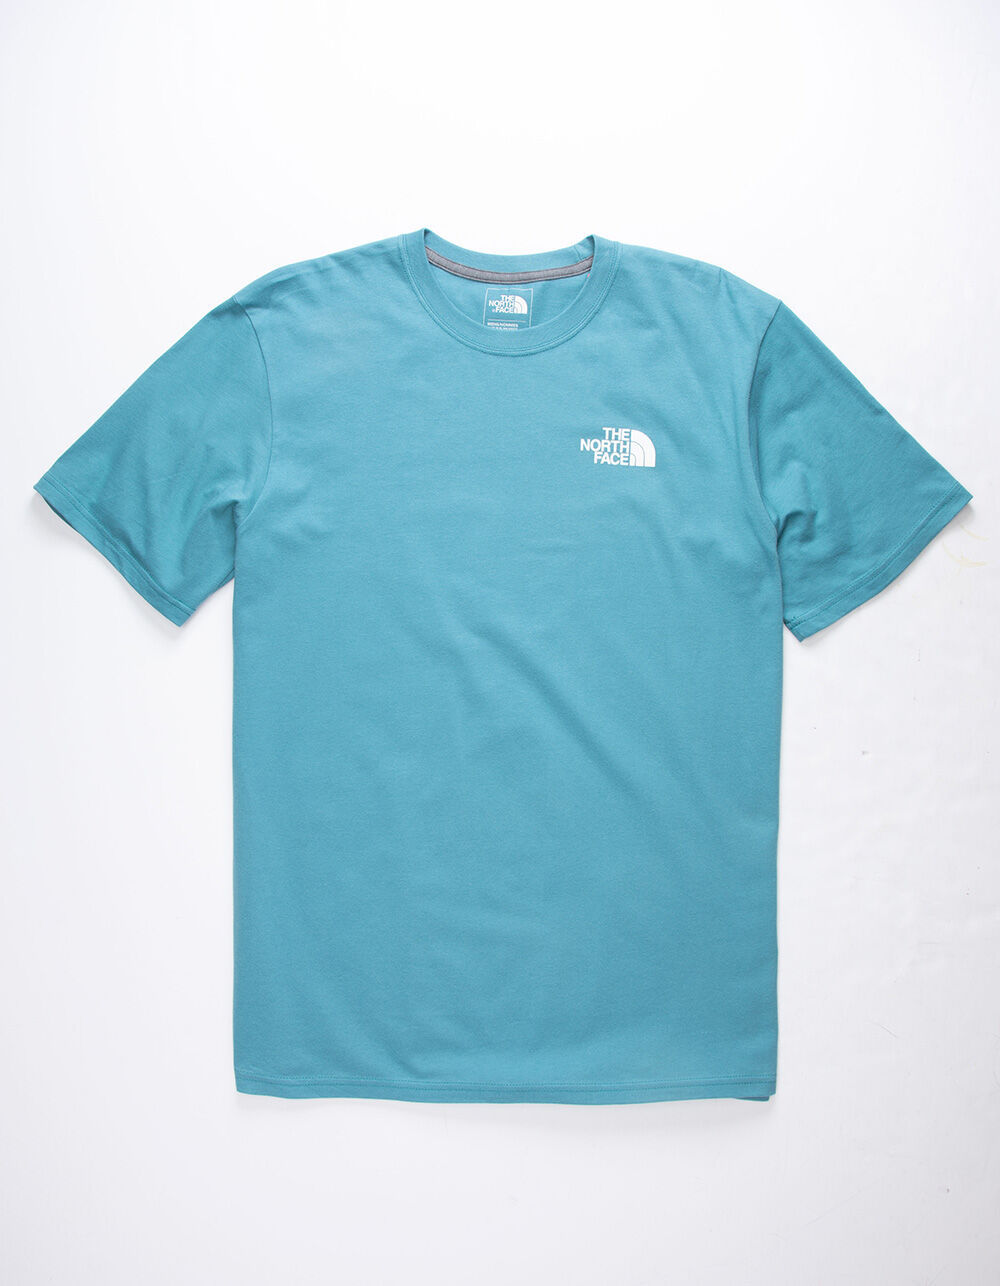 THE NORTH FACE Red Box Joshua Tree T-Shirt